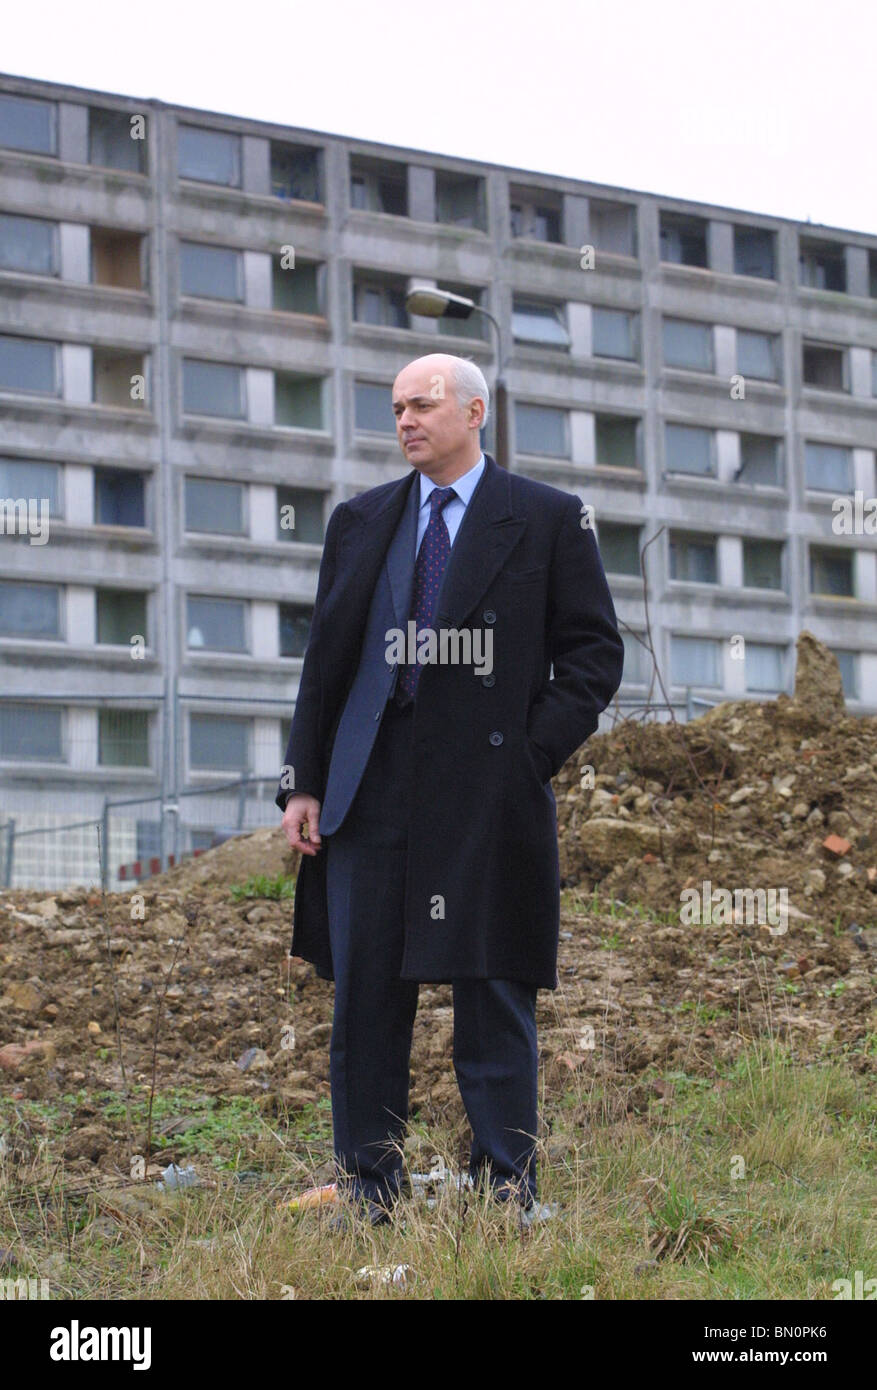 Le très honorable député par Iain Duncan Smith tower block Photo Stock